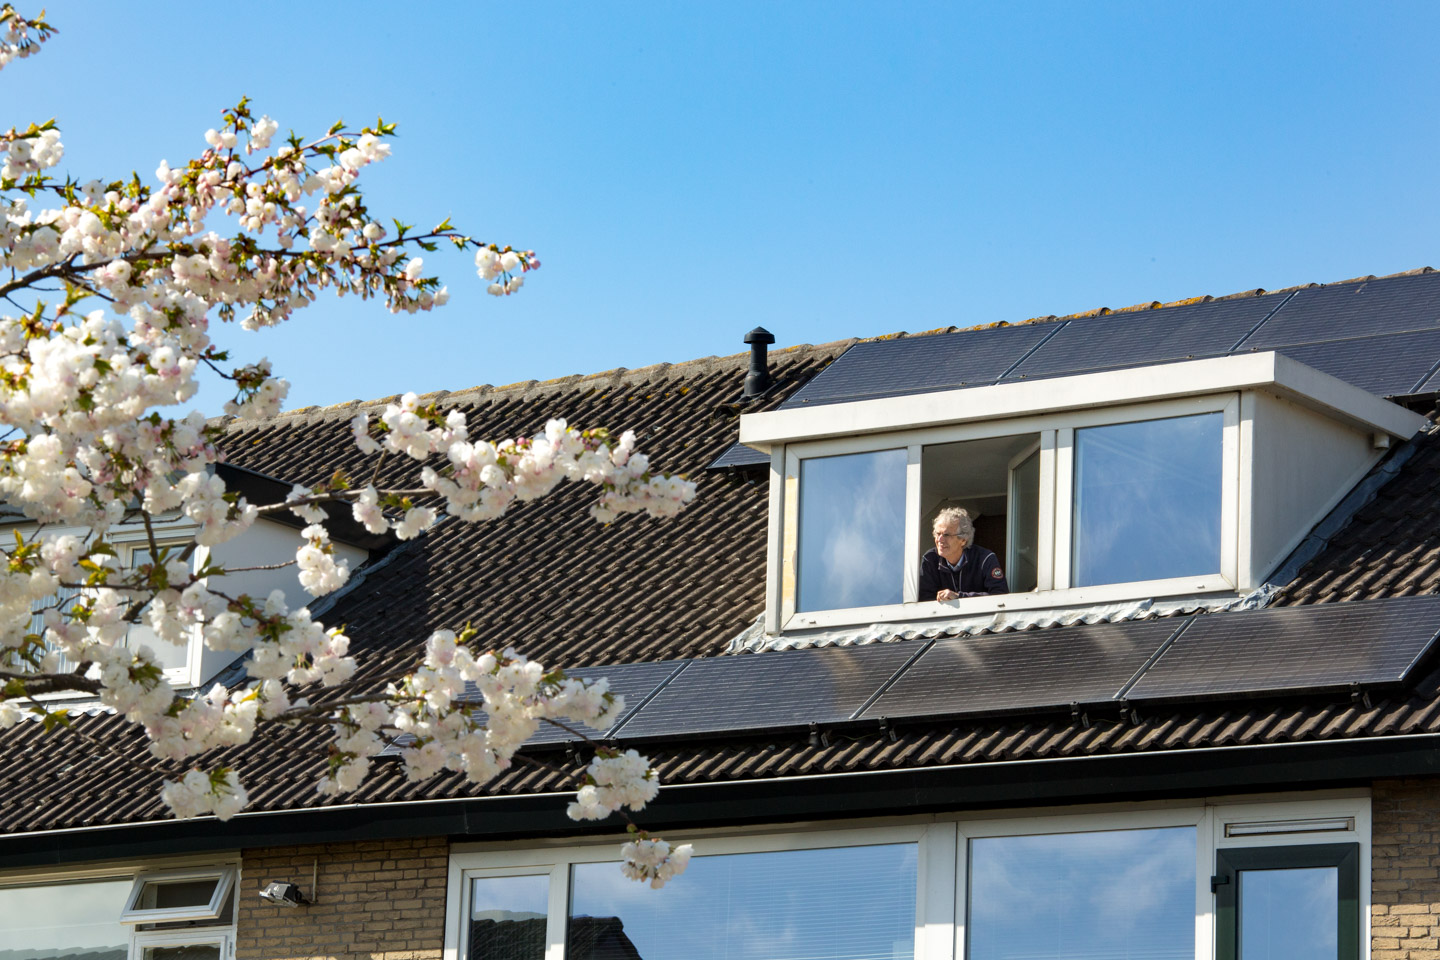 Man is enjoying the sunlight in spring that also gives energy to his solar panels